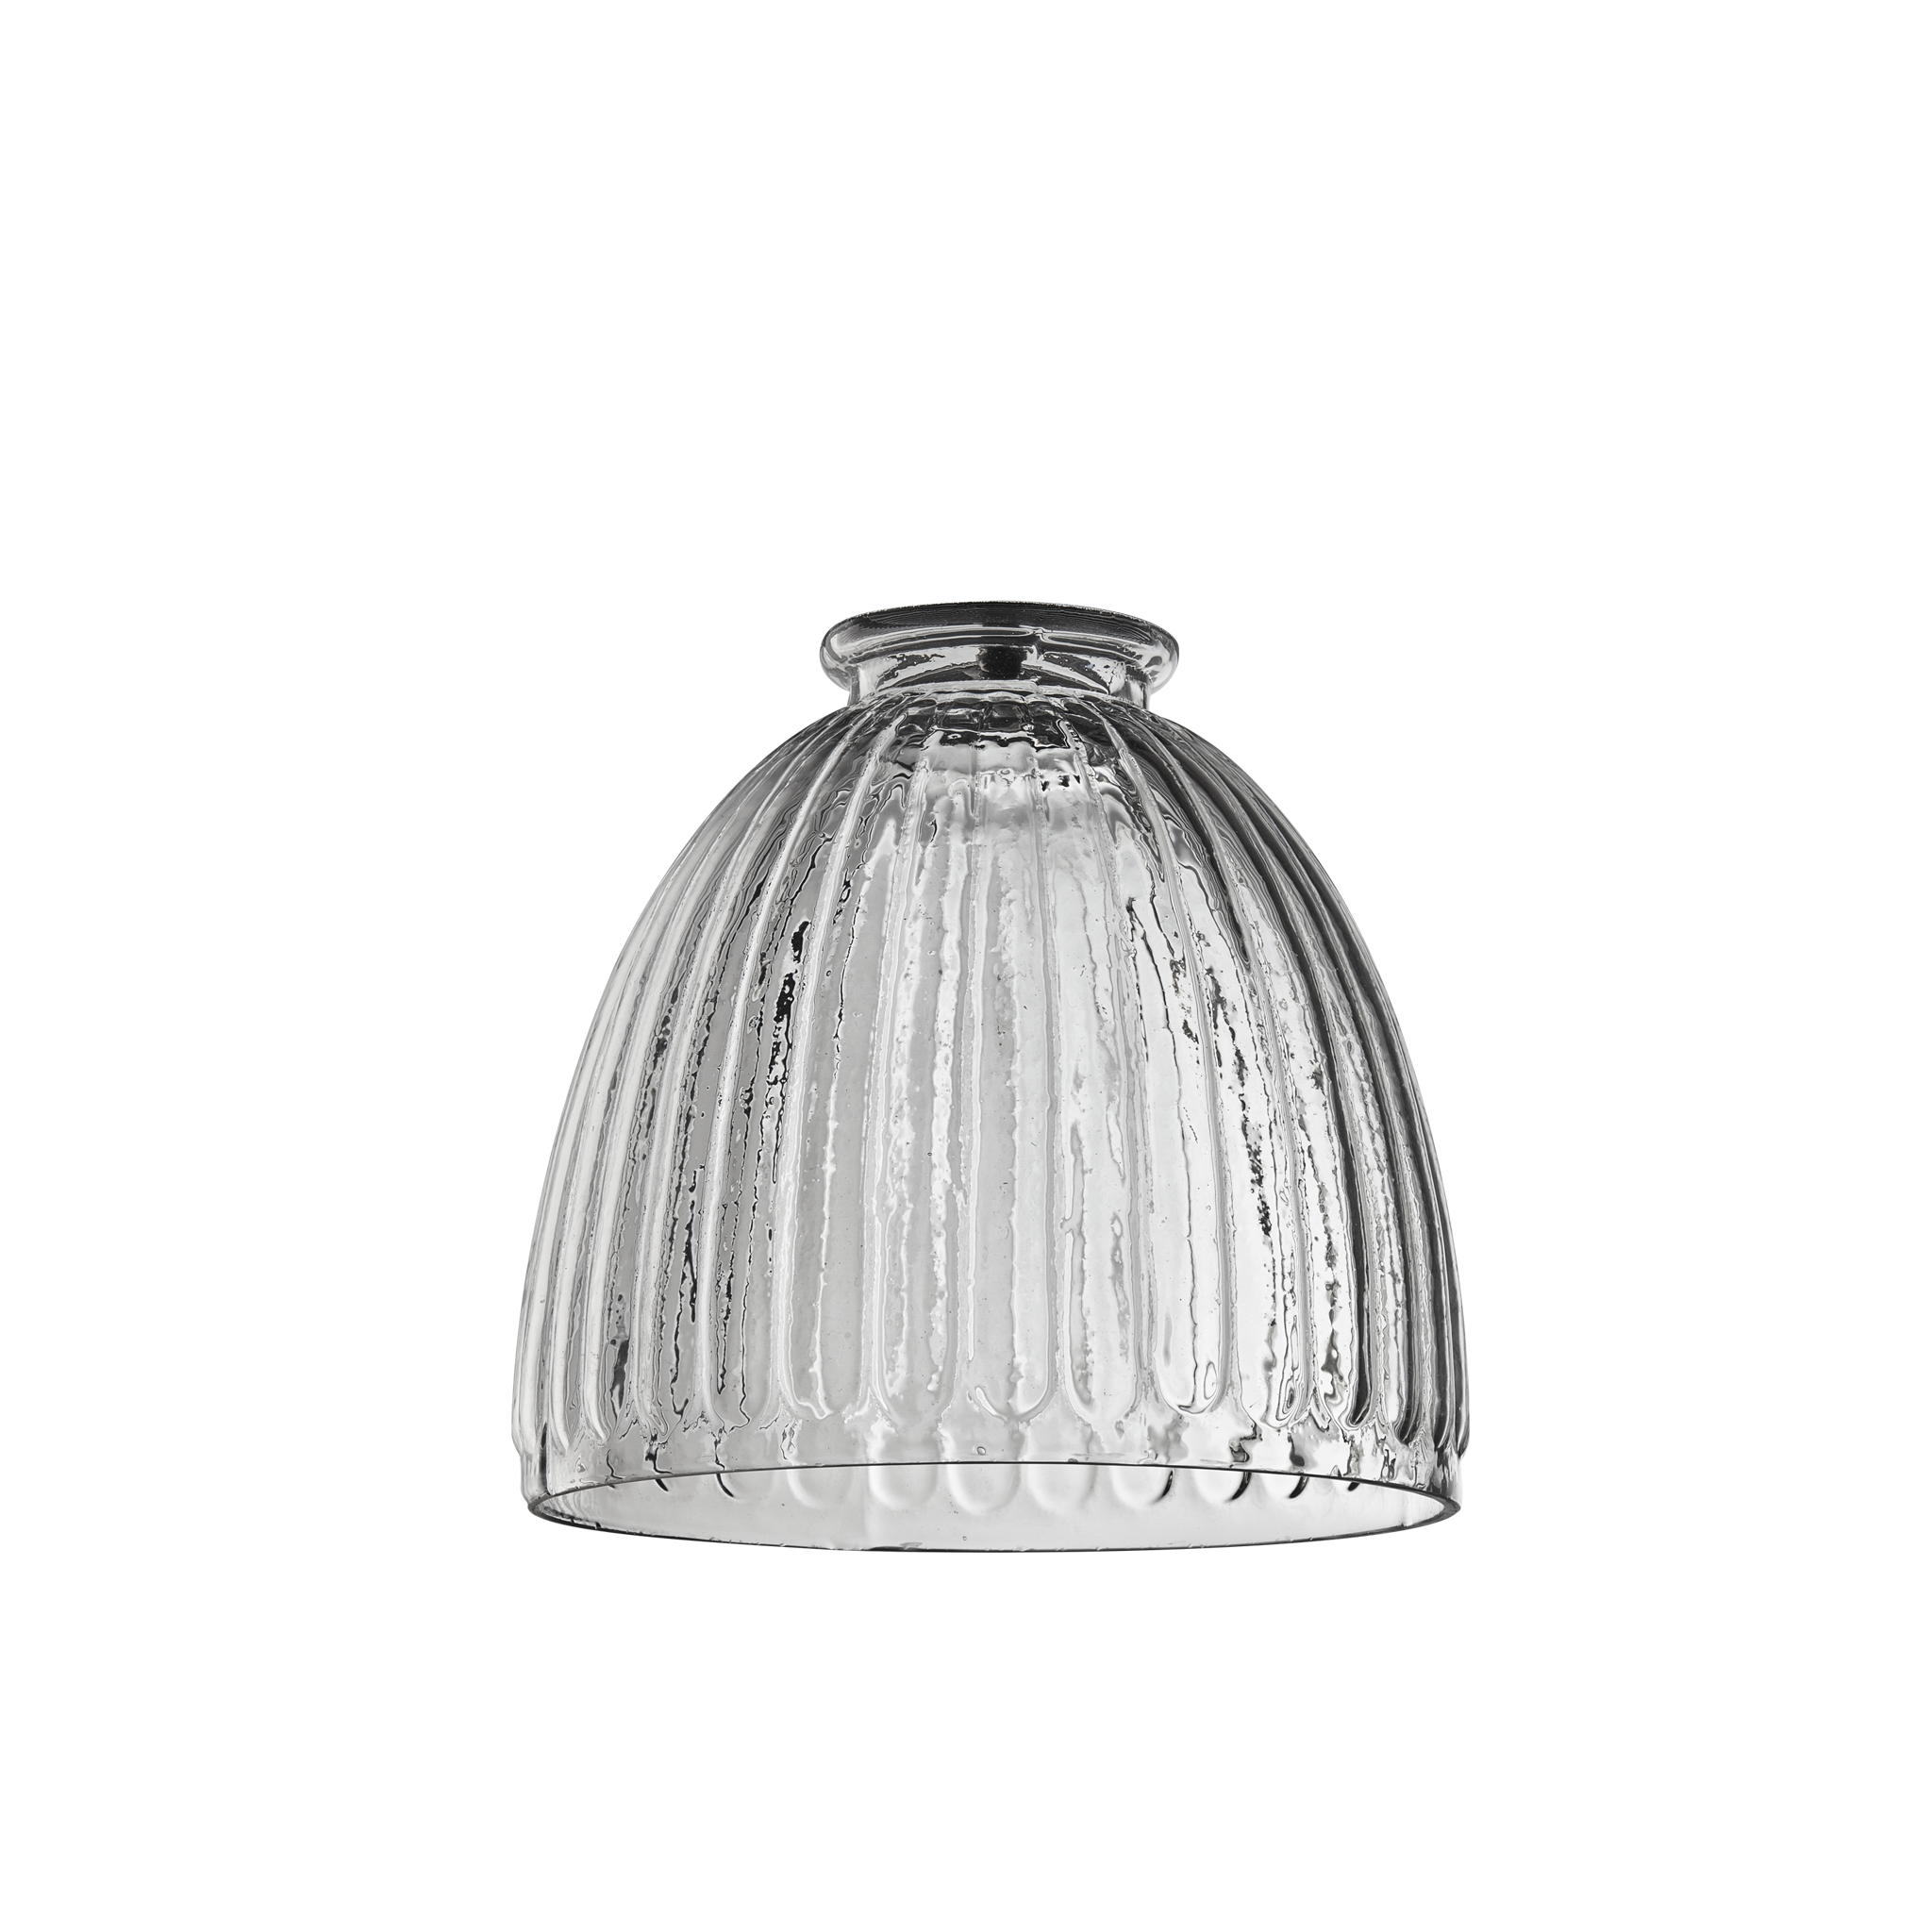 7 Inch Glass Cone - Lighting - Industville